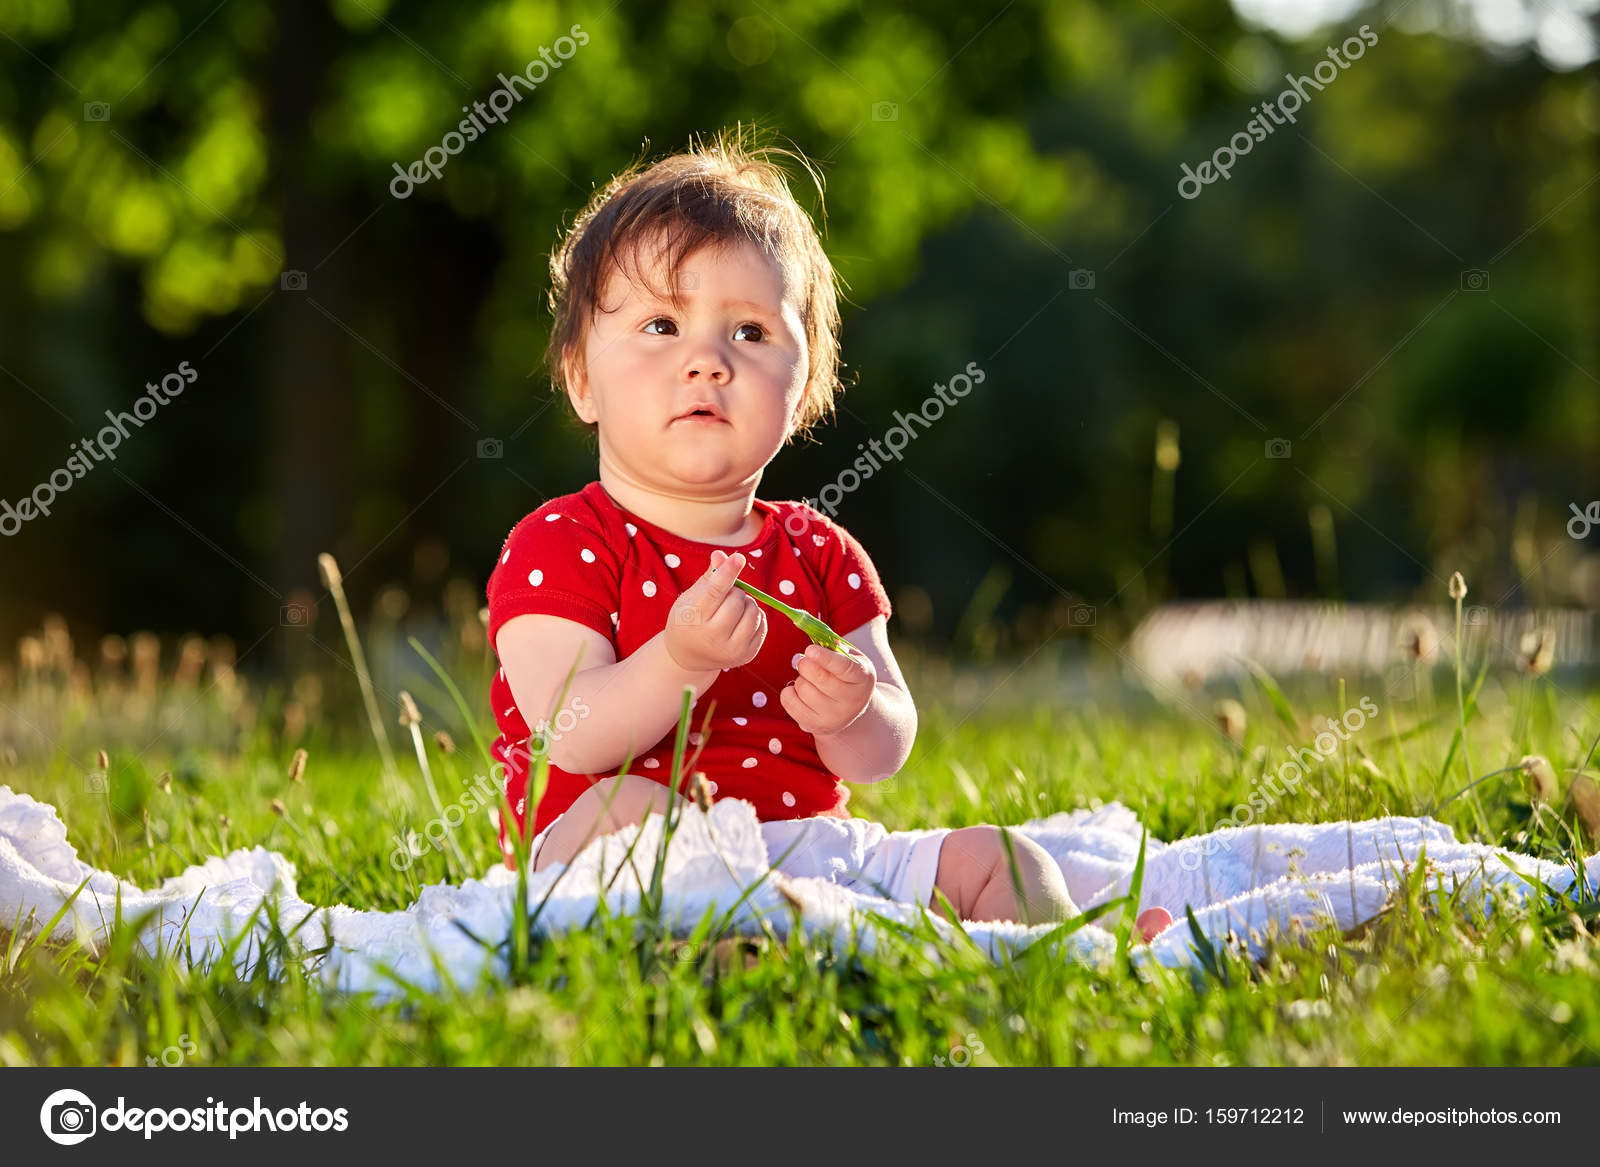 cute adorable nice baby girl in red spring dress smiling sitting